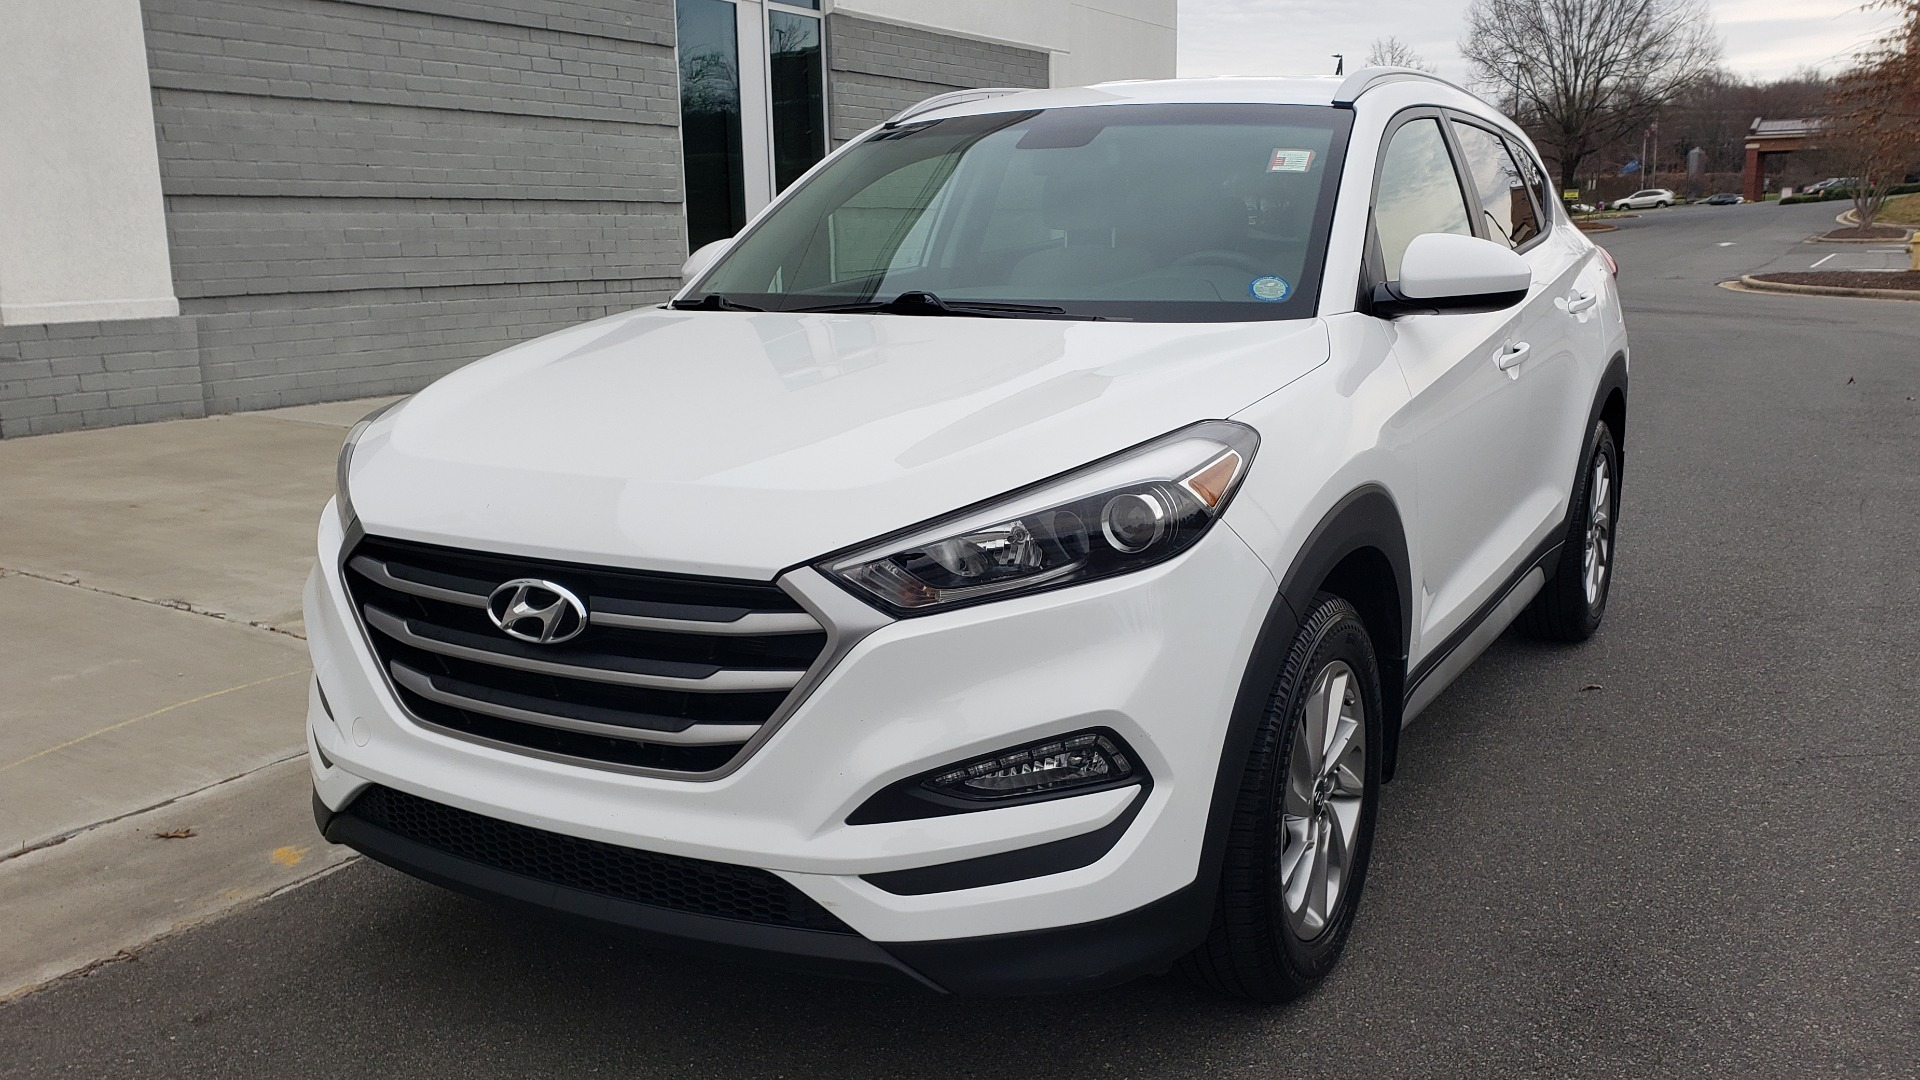 Used 2017 Hyundai TUCSON SE / 2.0L / 6-SPD AUTO / CLOTH / REARVIEW CAMERA for sale Sold at Formula Imports in Charlotte NC 28227 3